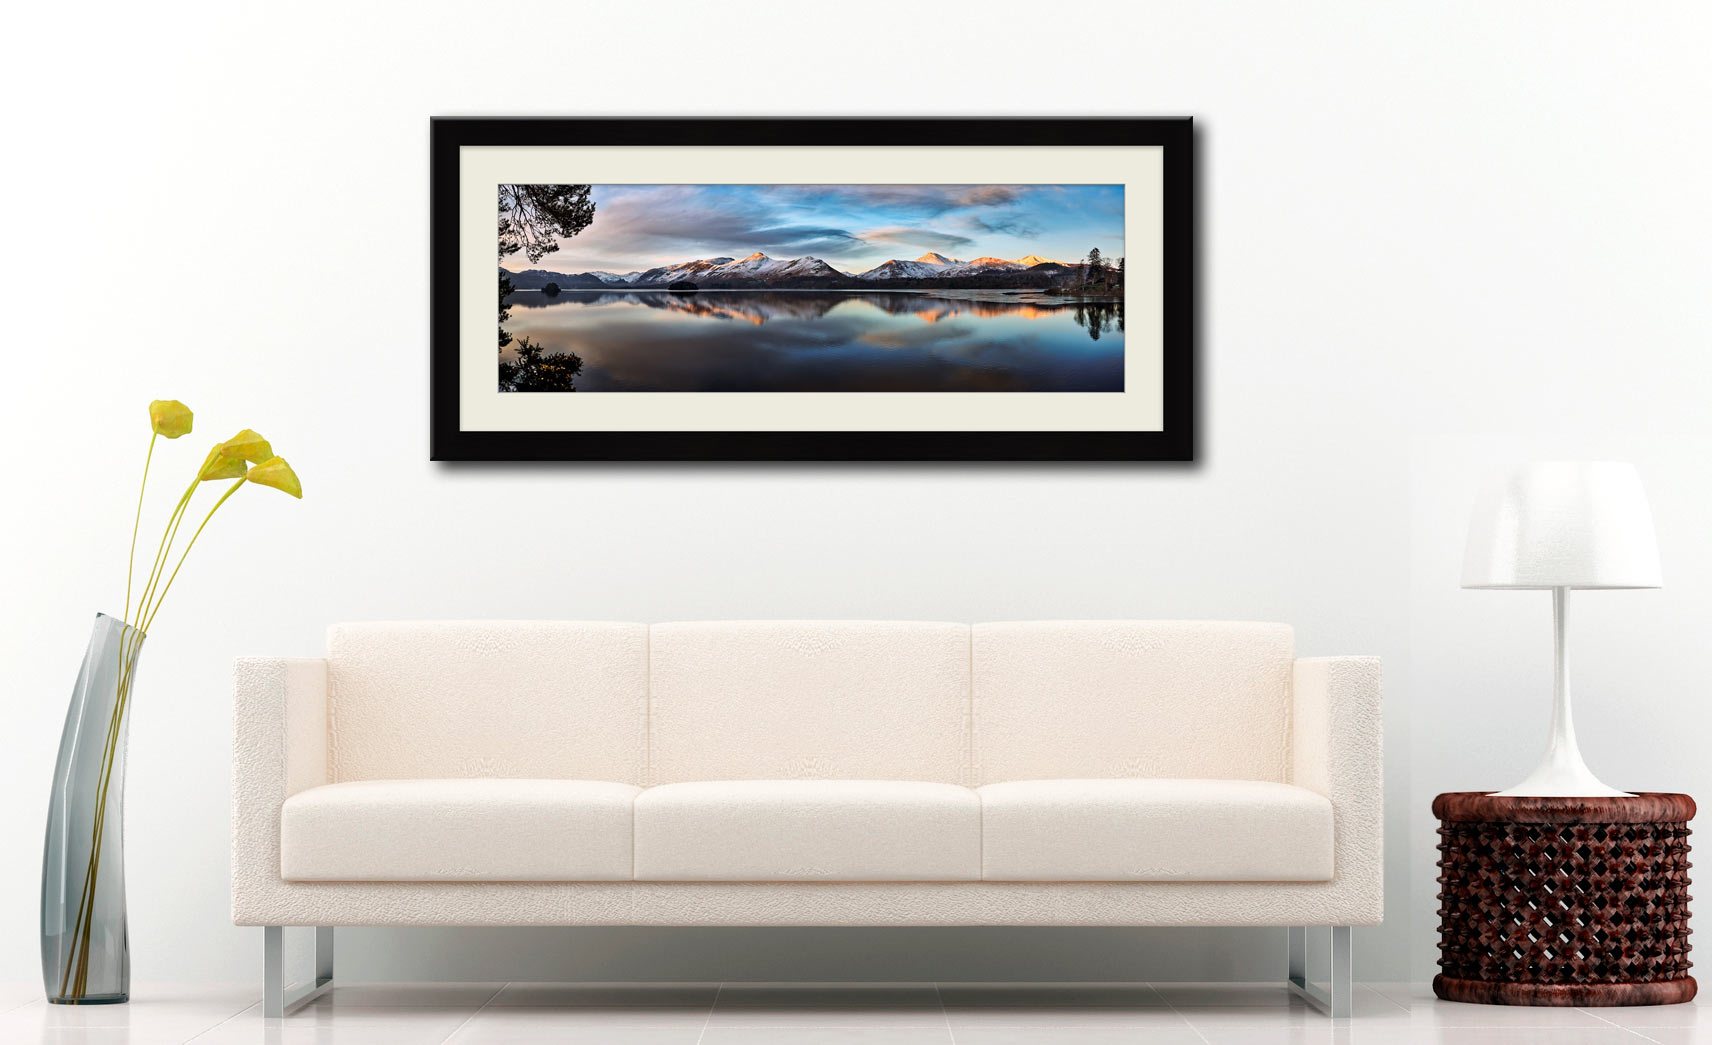 Cat Bells from Friars Crag - Framed Print with Mount on Wall